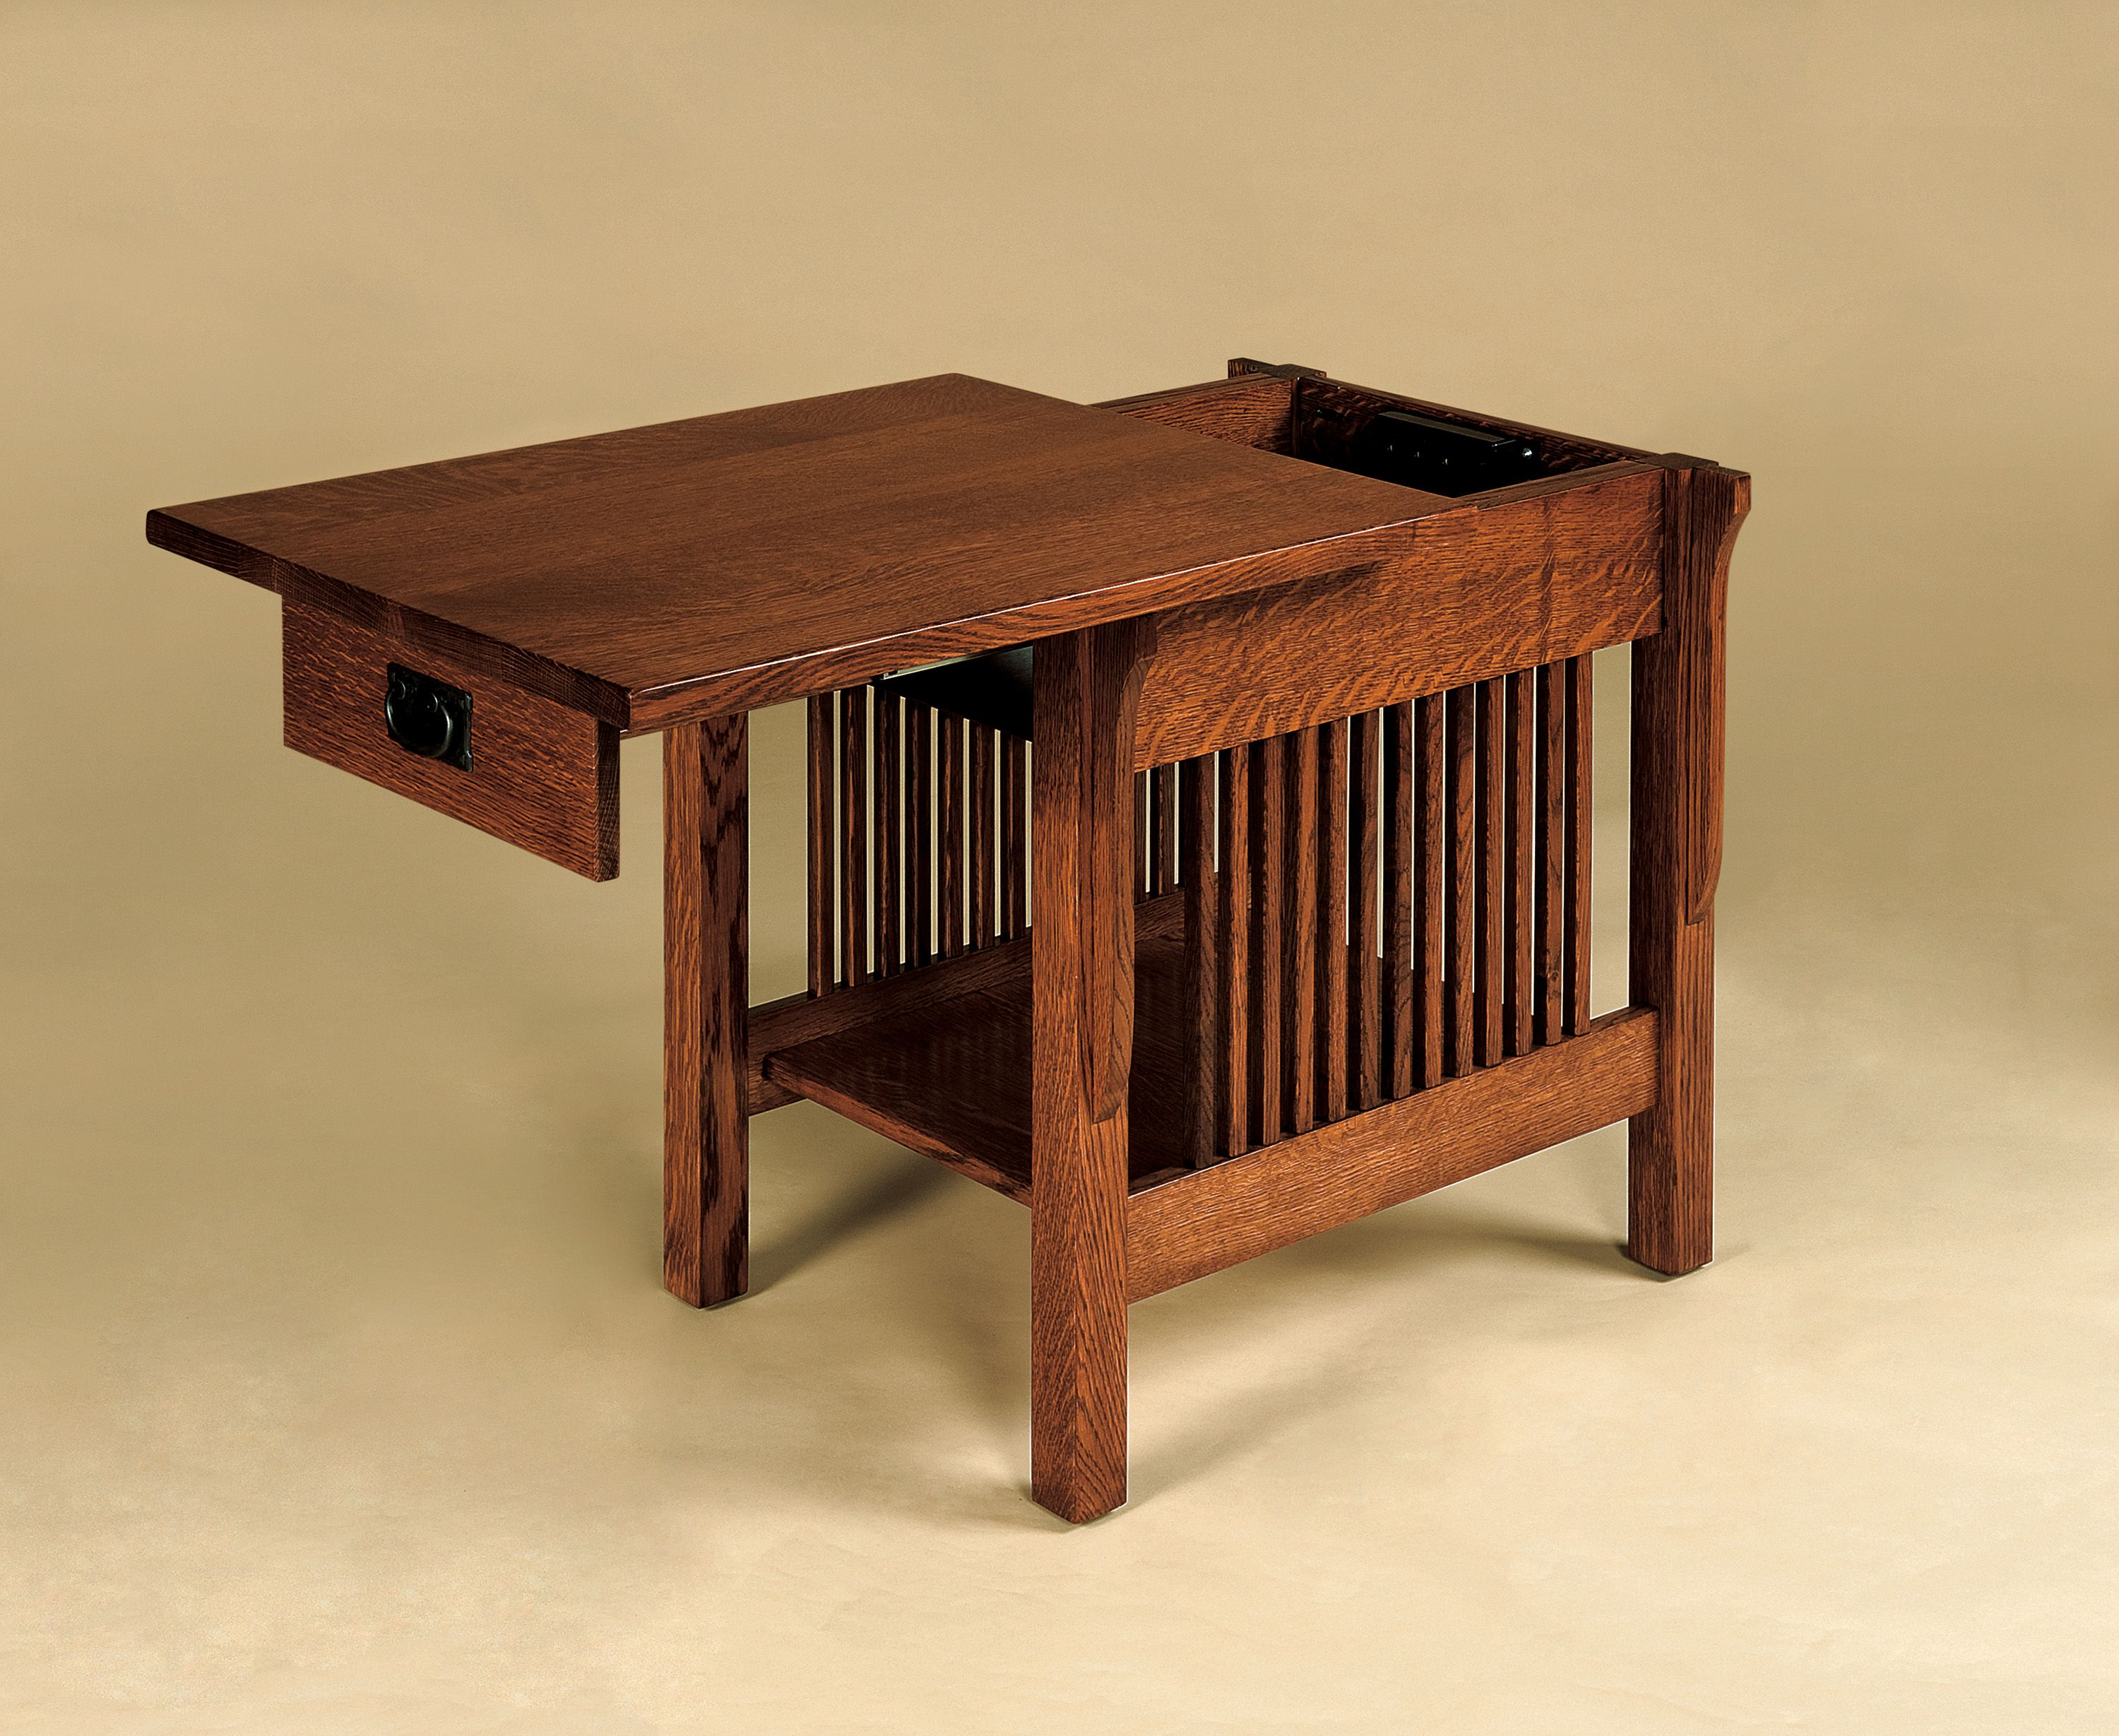 Wood N Choices End Tables With Storage Cheap End Tables Furniture [ 2458 x 3000 Pixel ]